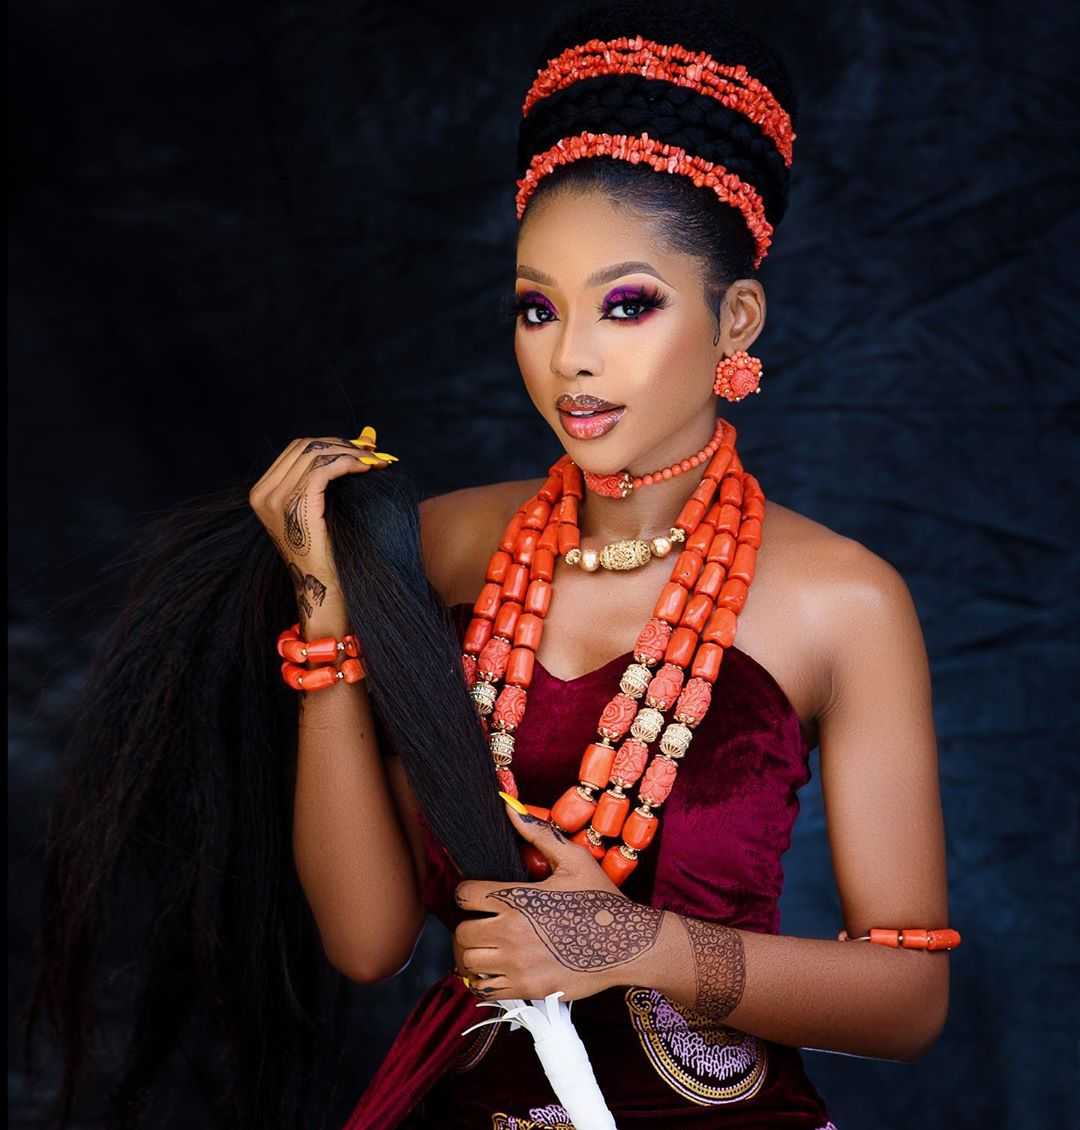 This Igbo Bridal Beauty Inspo will Leave You Wanting More